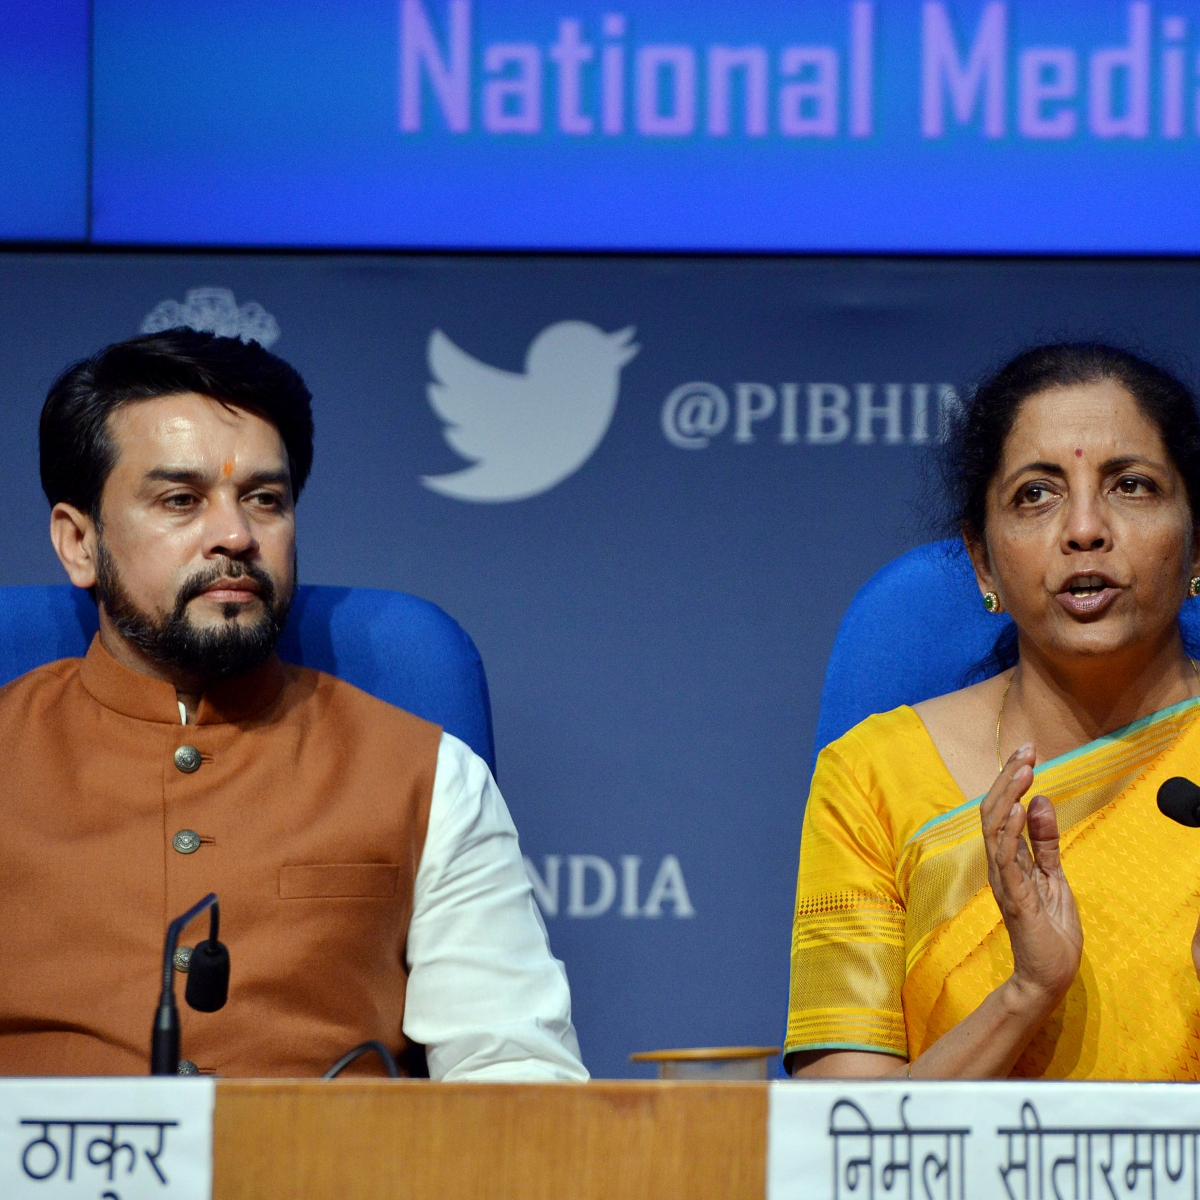 Bored with the pressers? Nirmala Sitharaman and Anurag Thakur's third press conference in just ten sentences